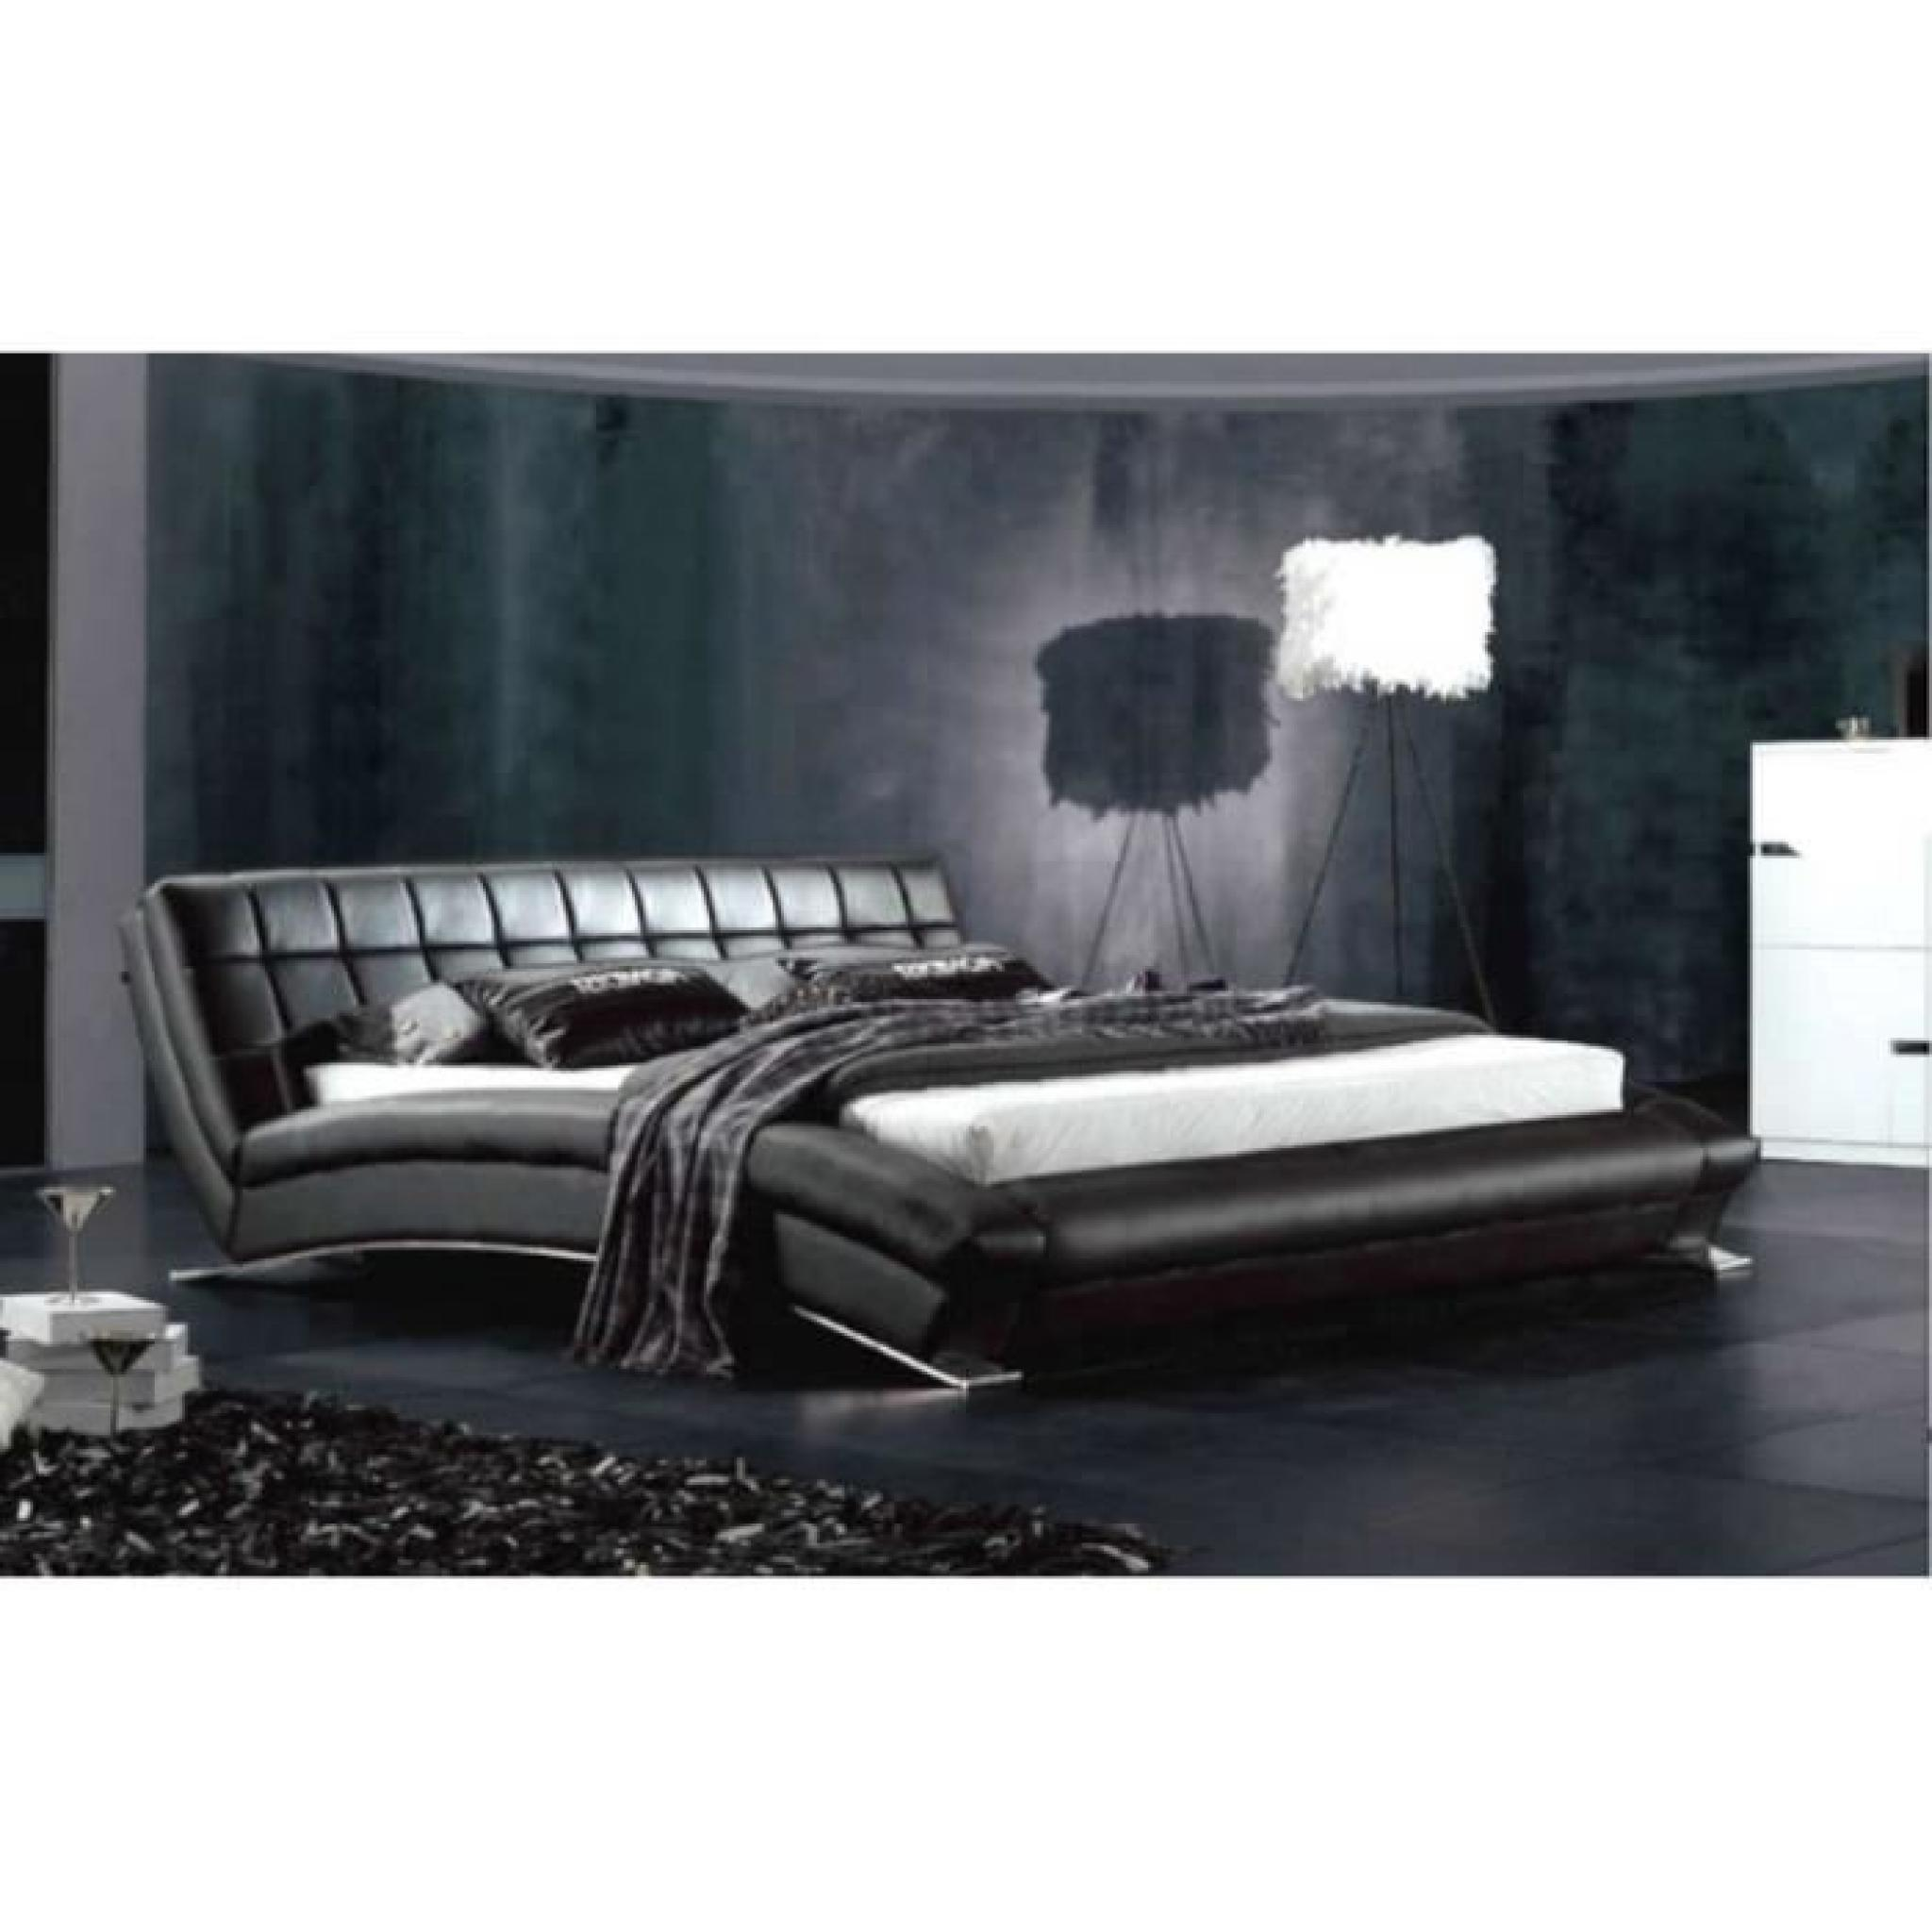 justhome soho noir lit rembourr en cuir cologique taille 180 x 200 cm achat vente lit pas. Black Bedroom Furniture Sets. Home Design Ideas